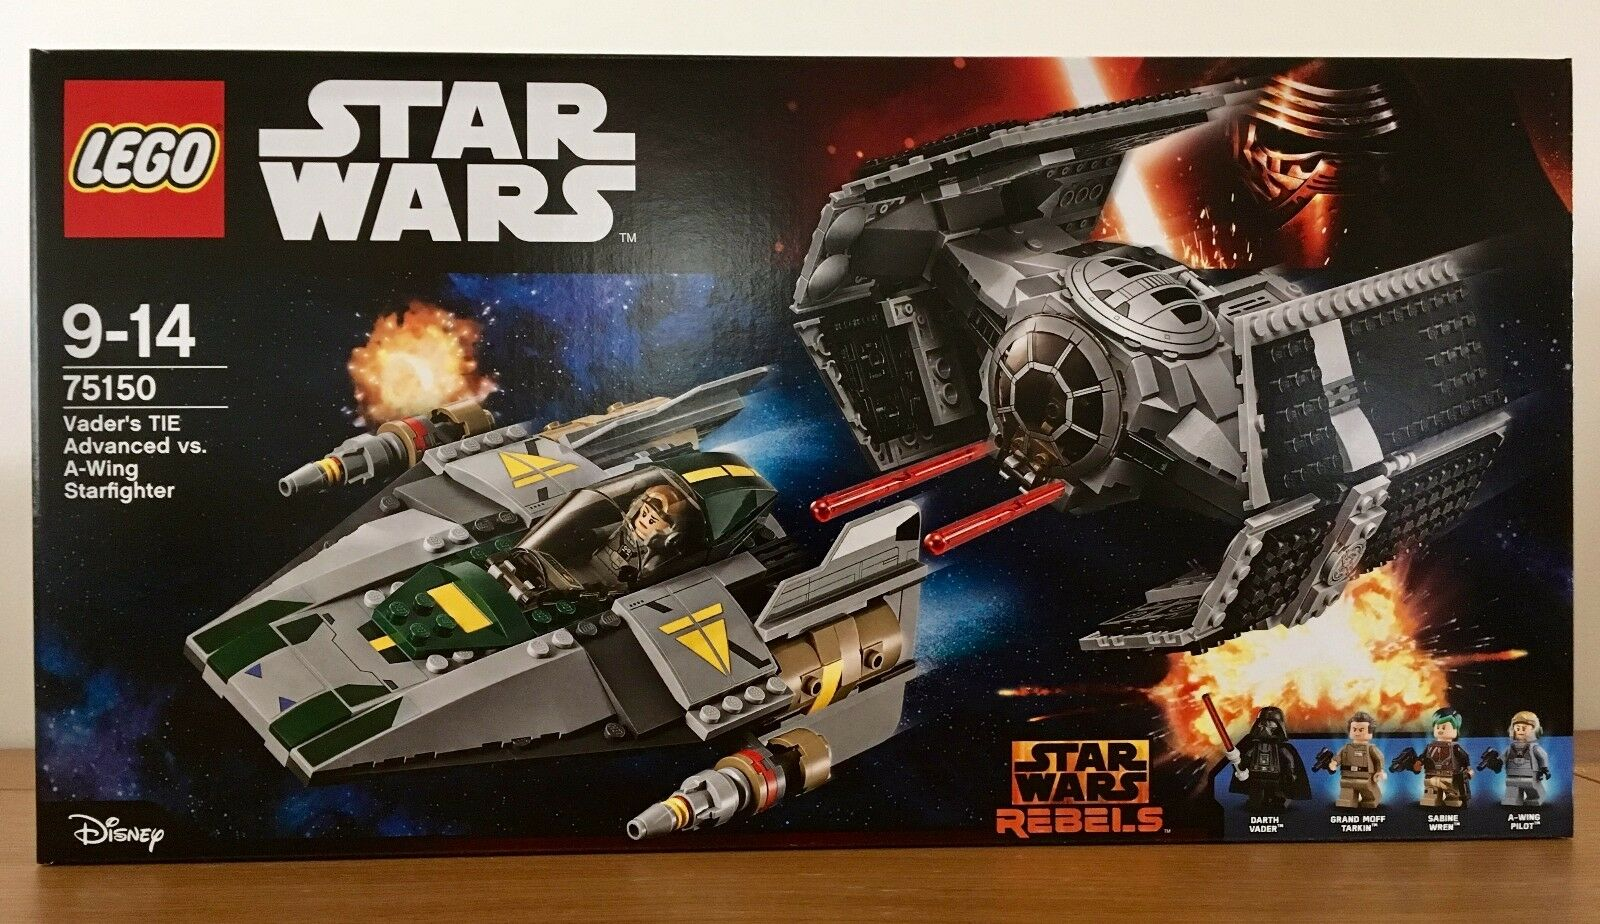 Lego Star Wars 75150 - Vader's TIE Advanced Vs. A-Wing - Never Opened